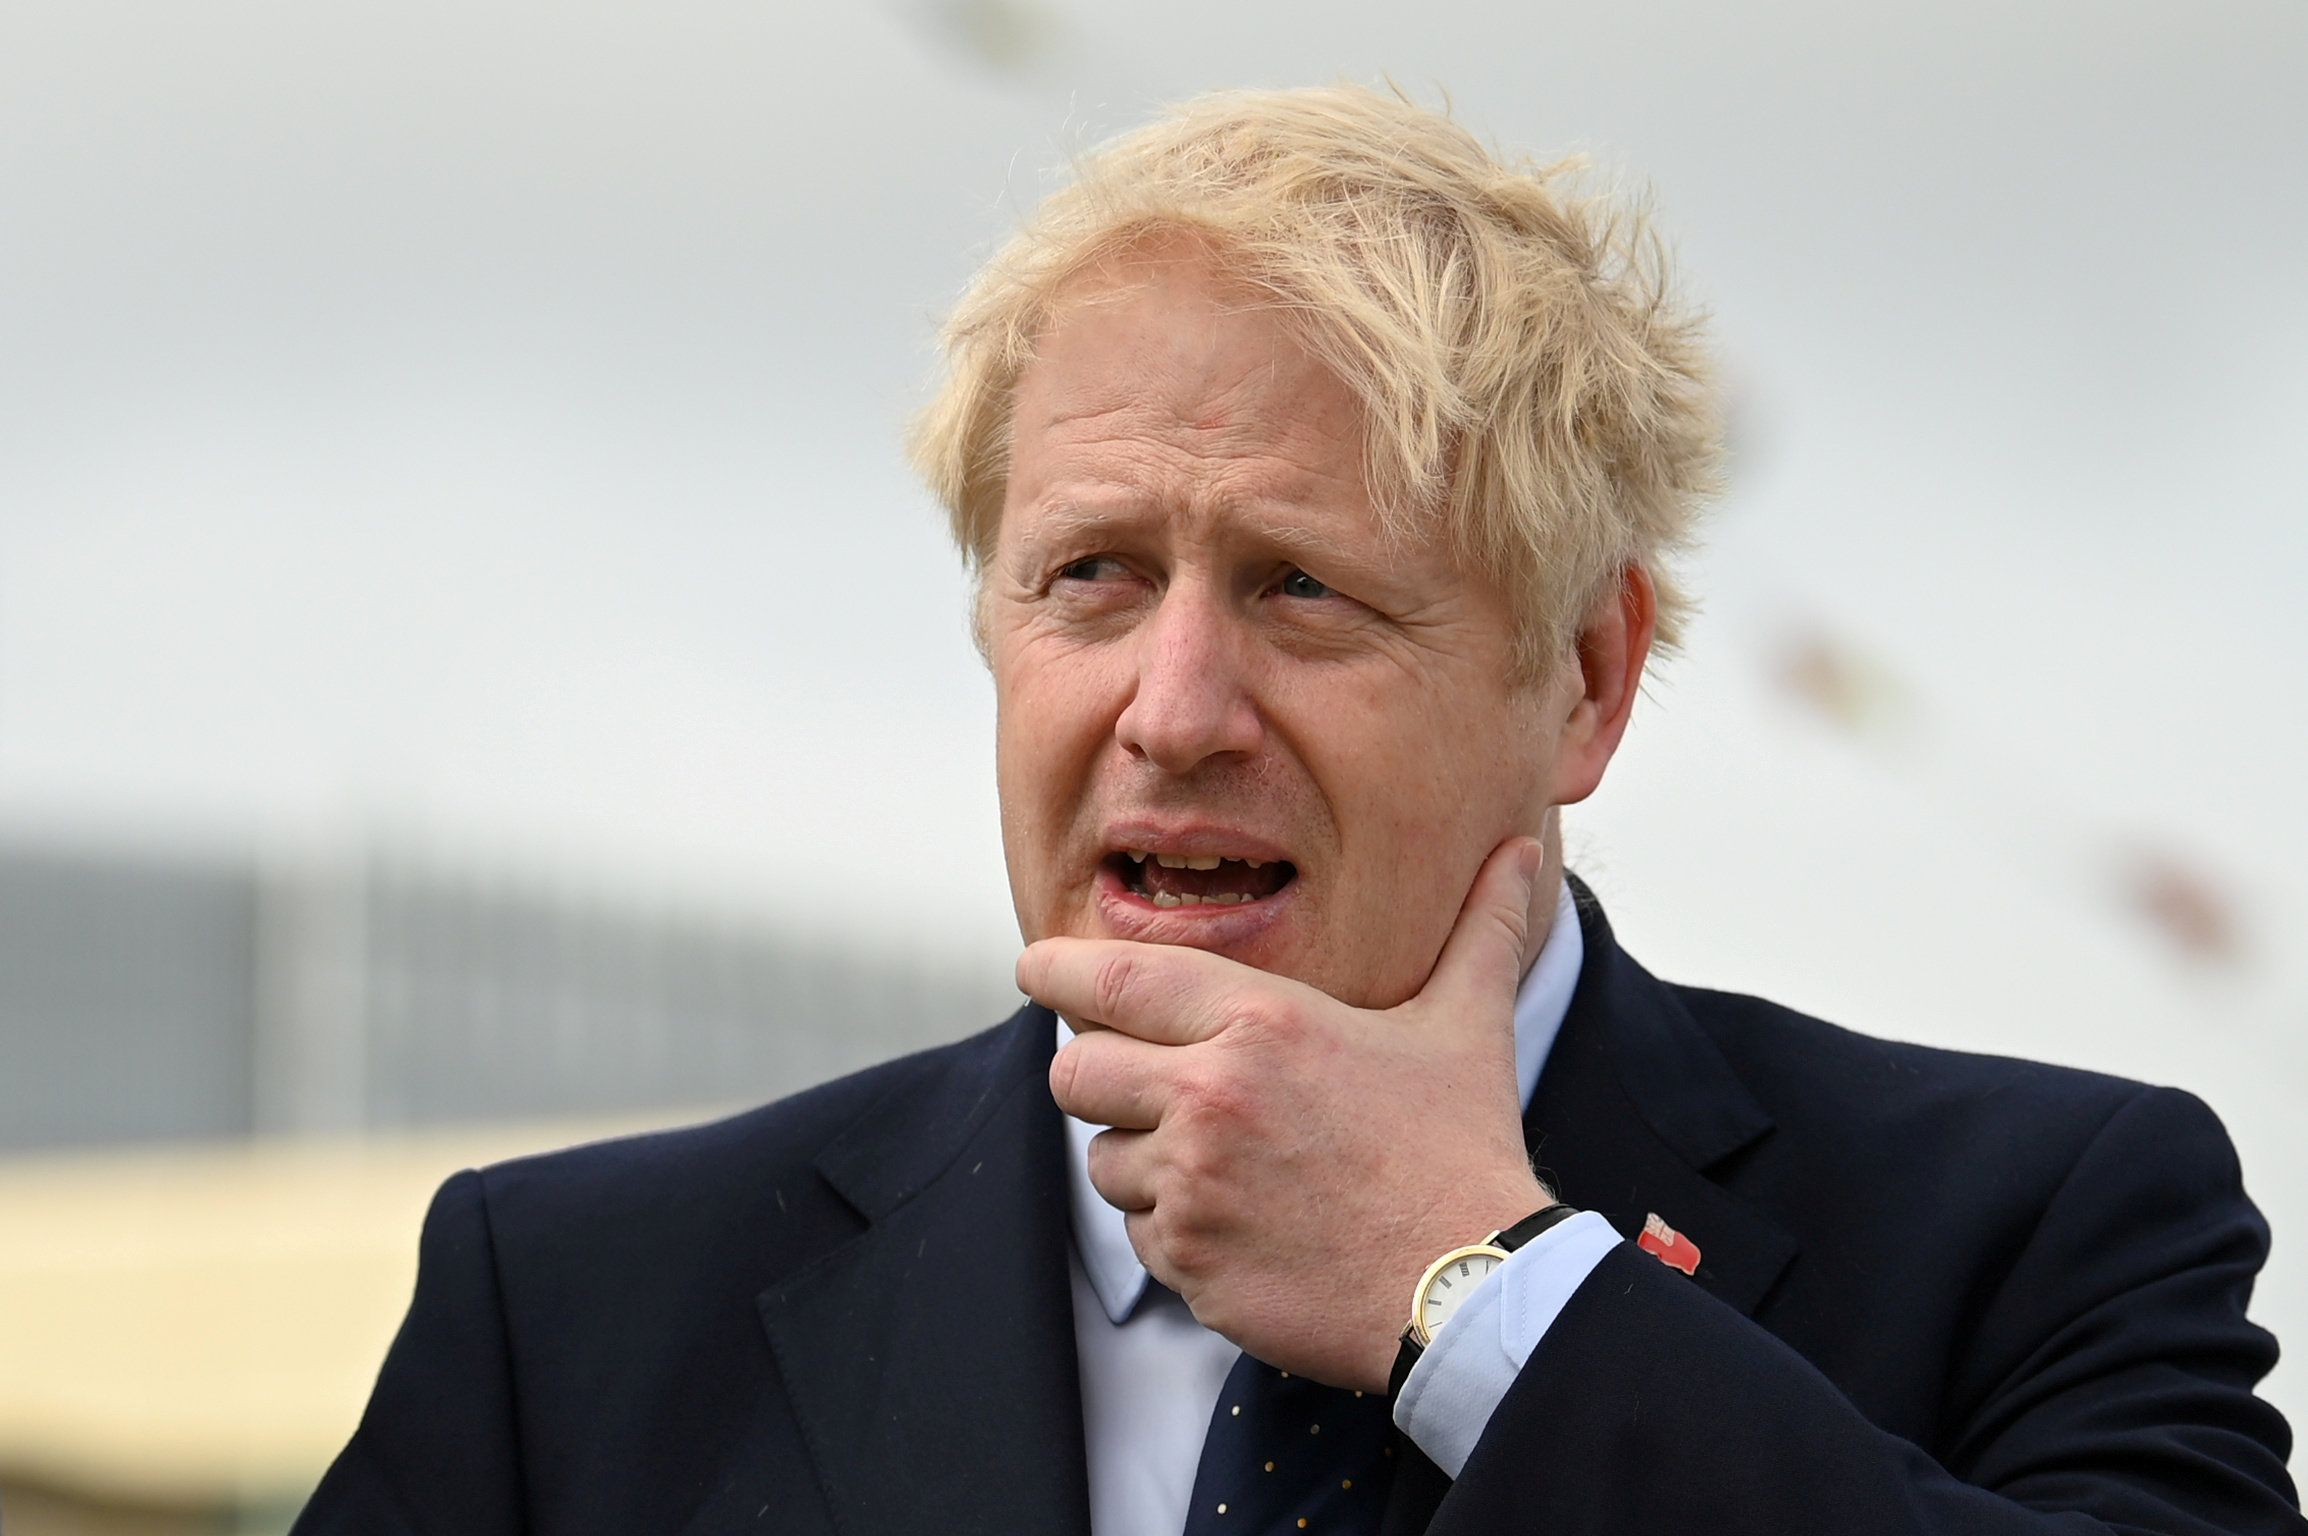 UK Prime Minister Boris Johnson with a hand to his chin looking concerned